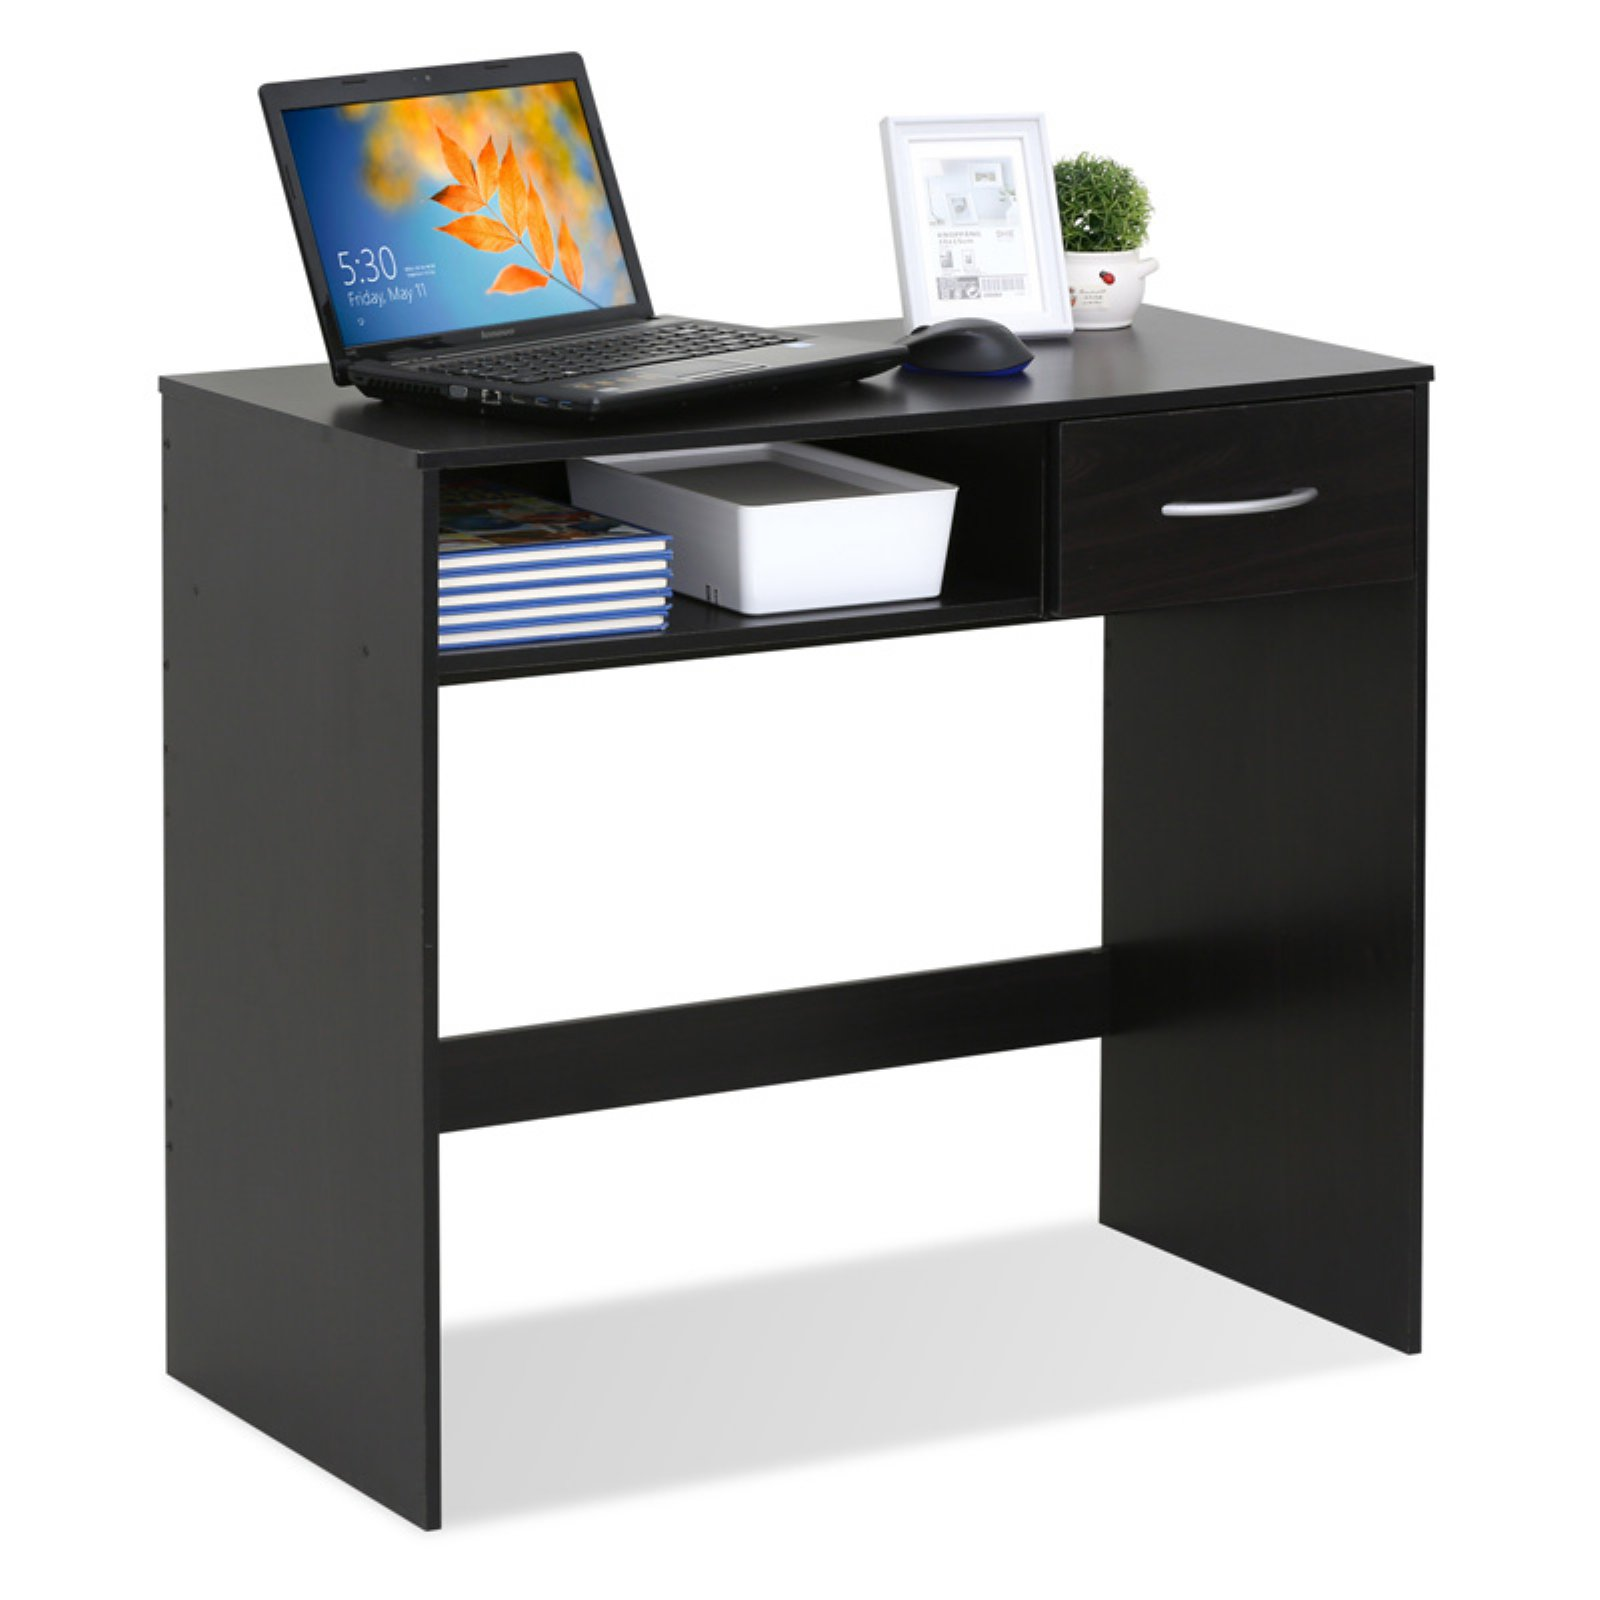 Furinno JAYA Computer Study Desk with Drawer, Espresso